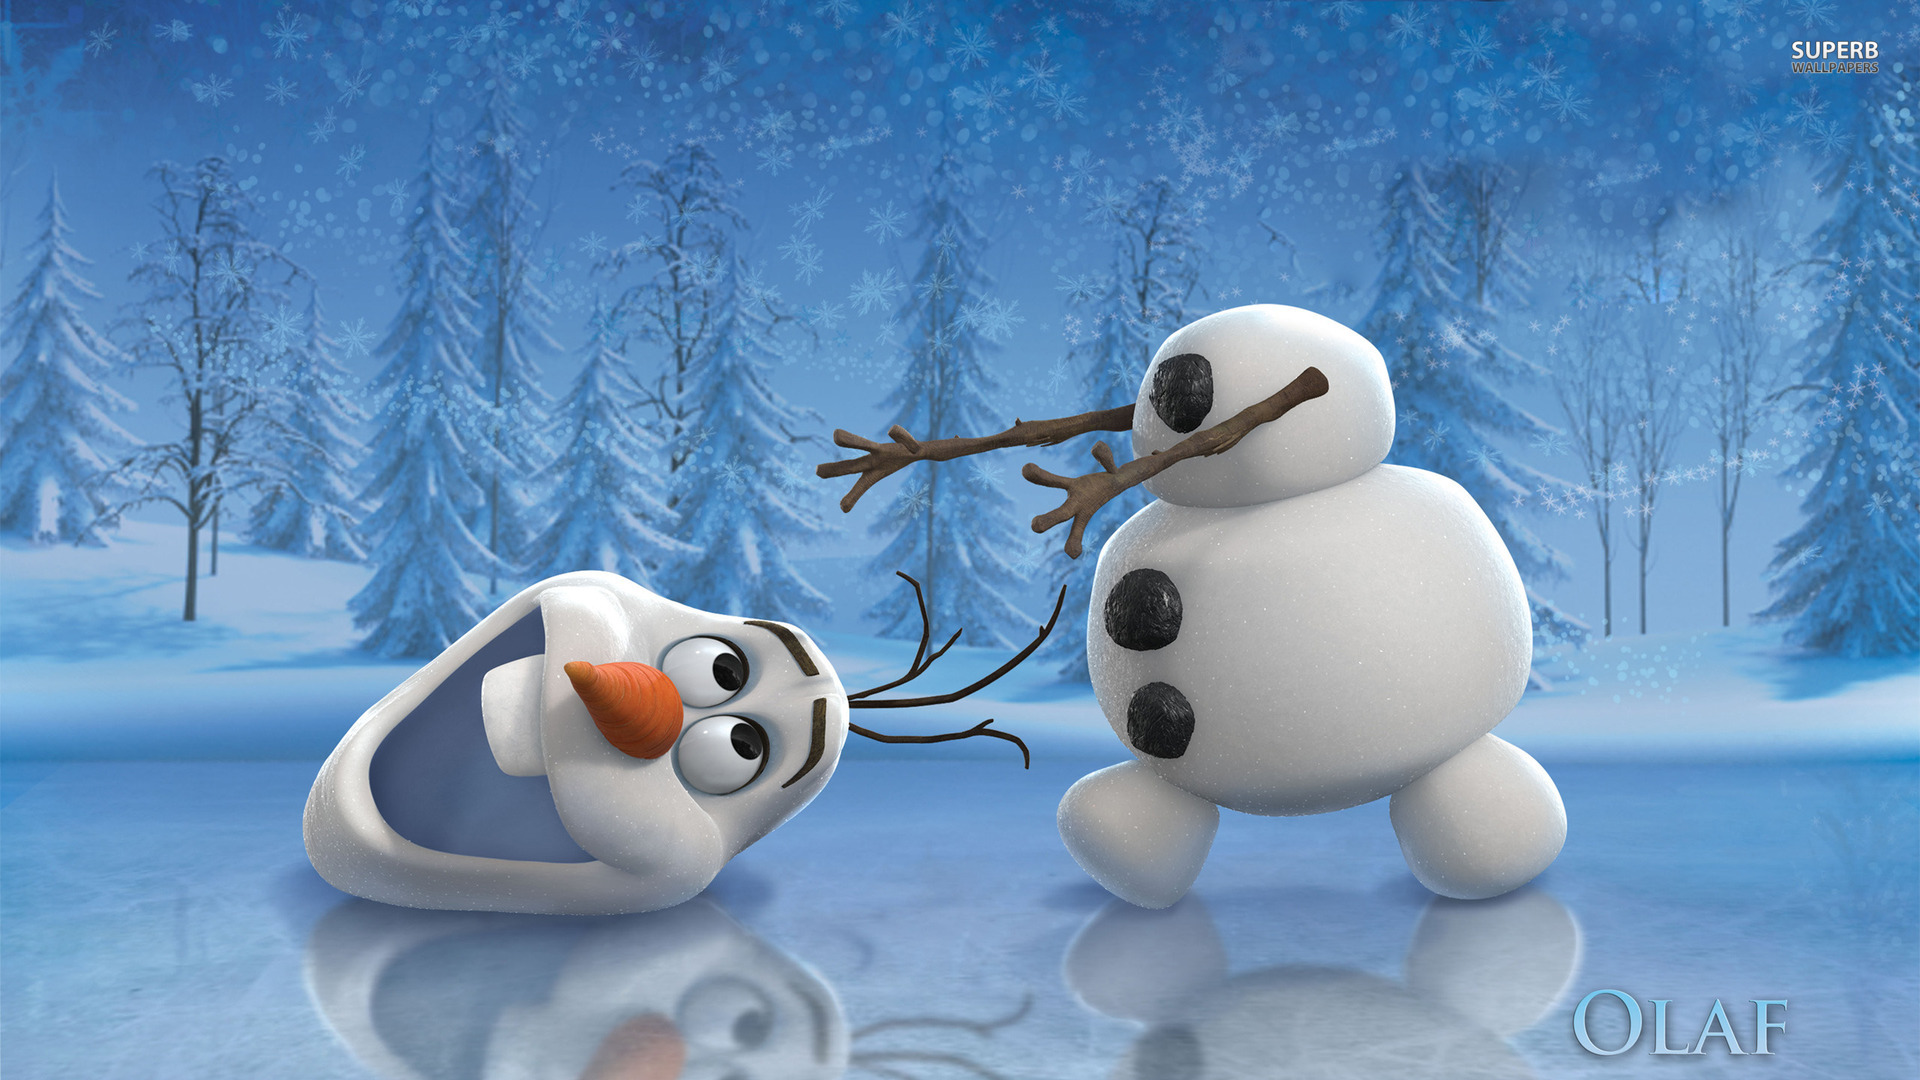 Funny Olaf in Frozen Movie Exclusive HD Wallpapers 1920x1080